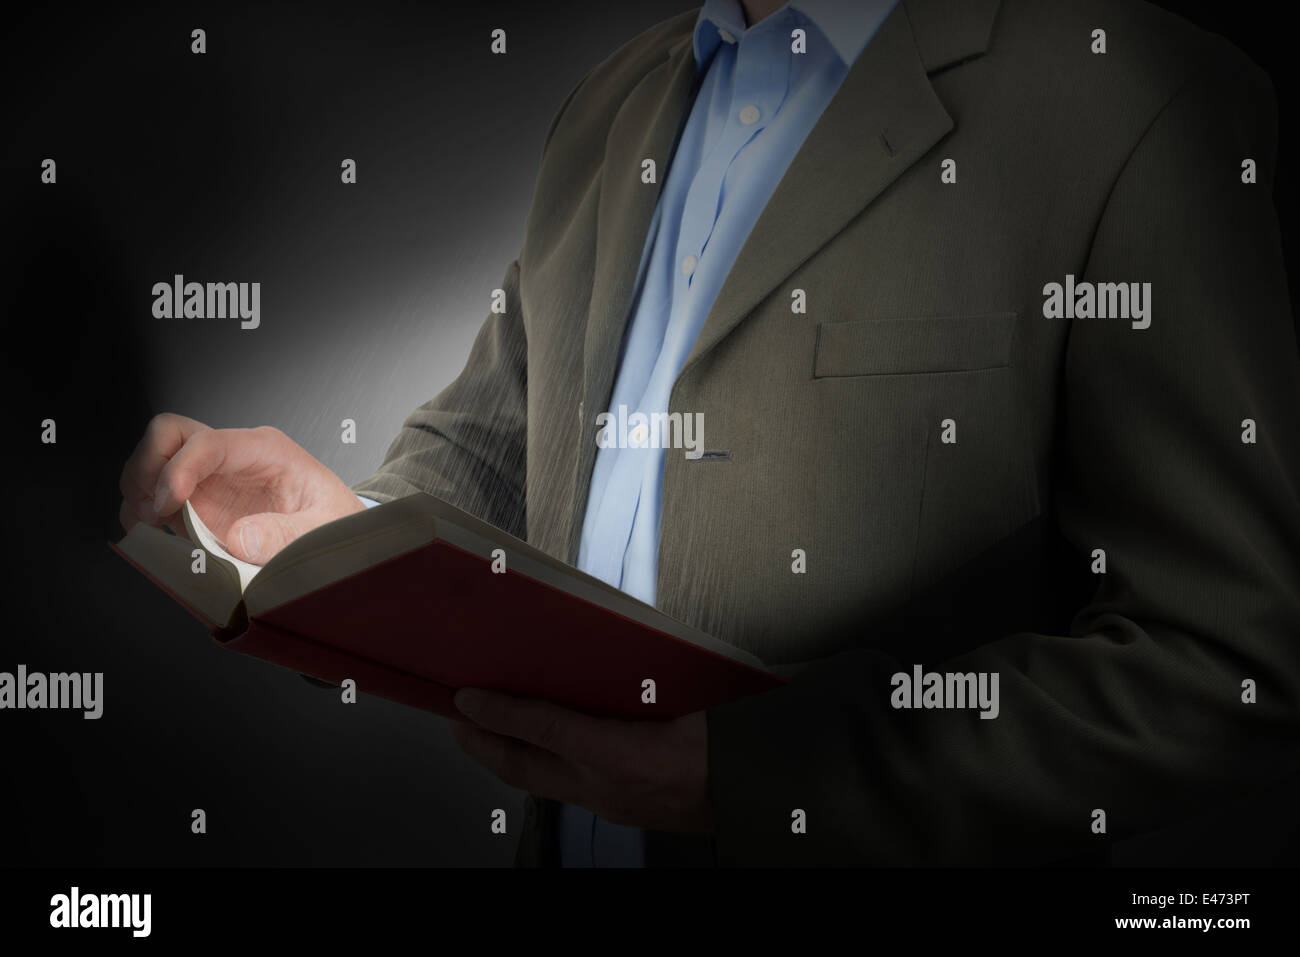 book of knowledge see the light, a man in a suit reading a book light from the pages. - Stock Image